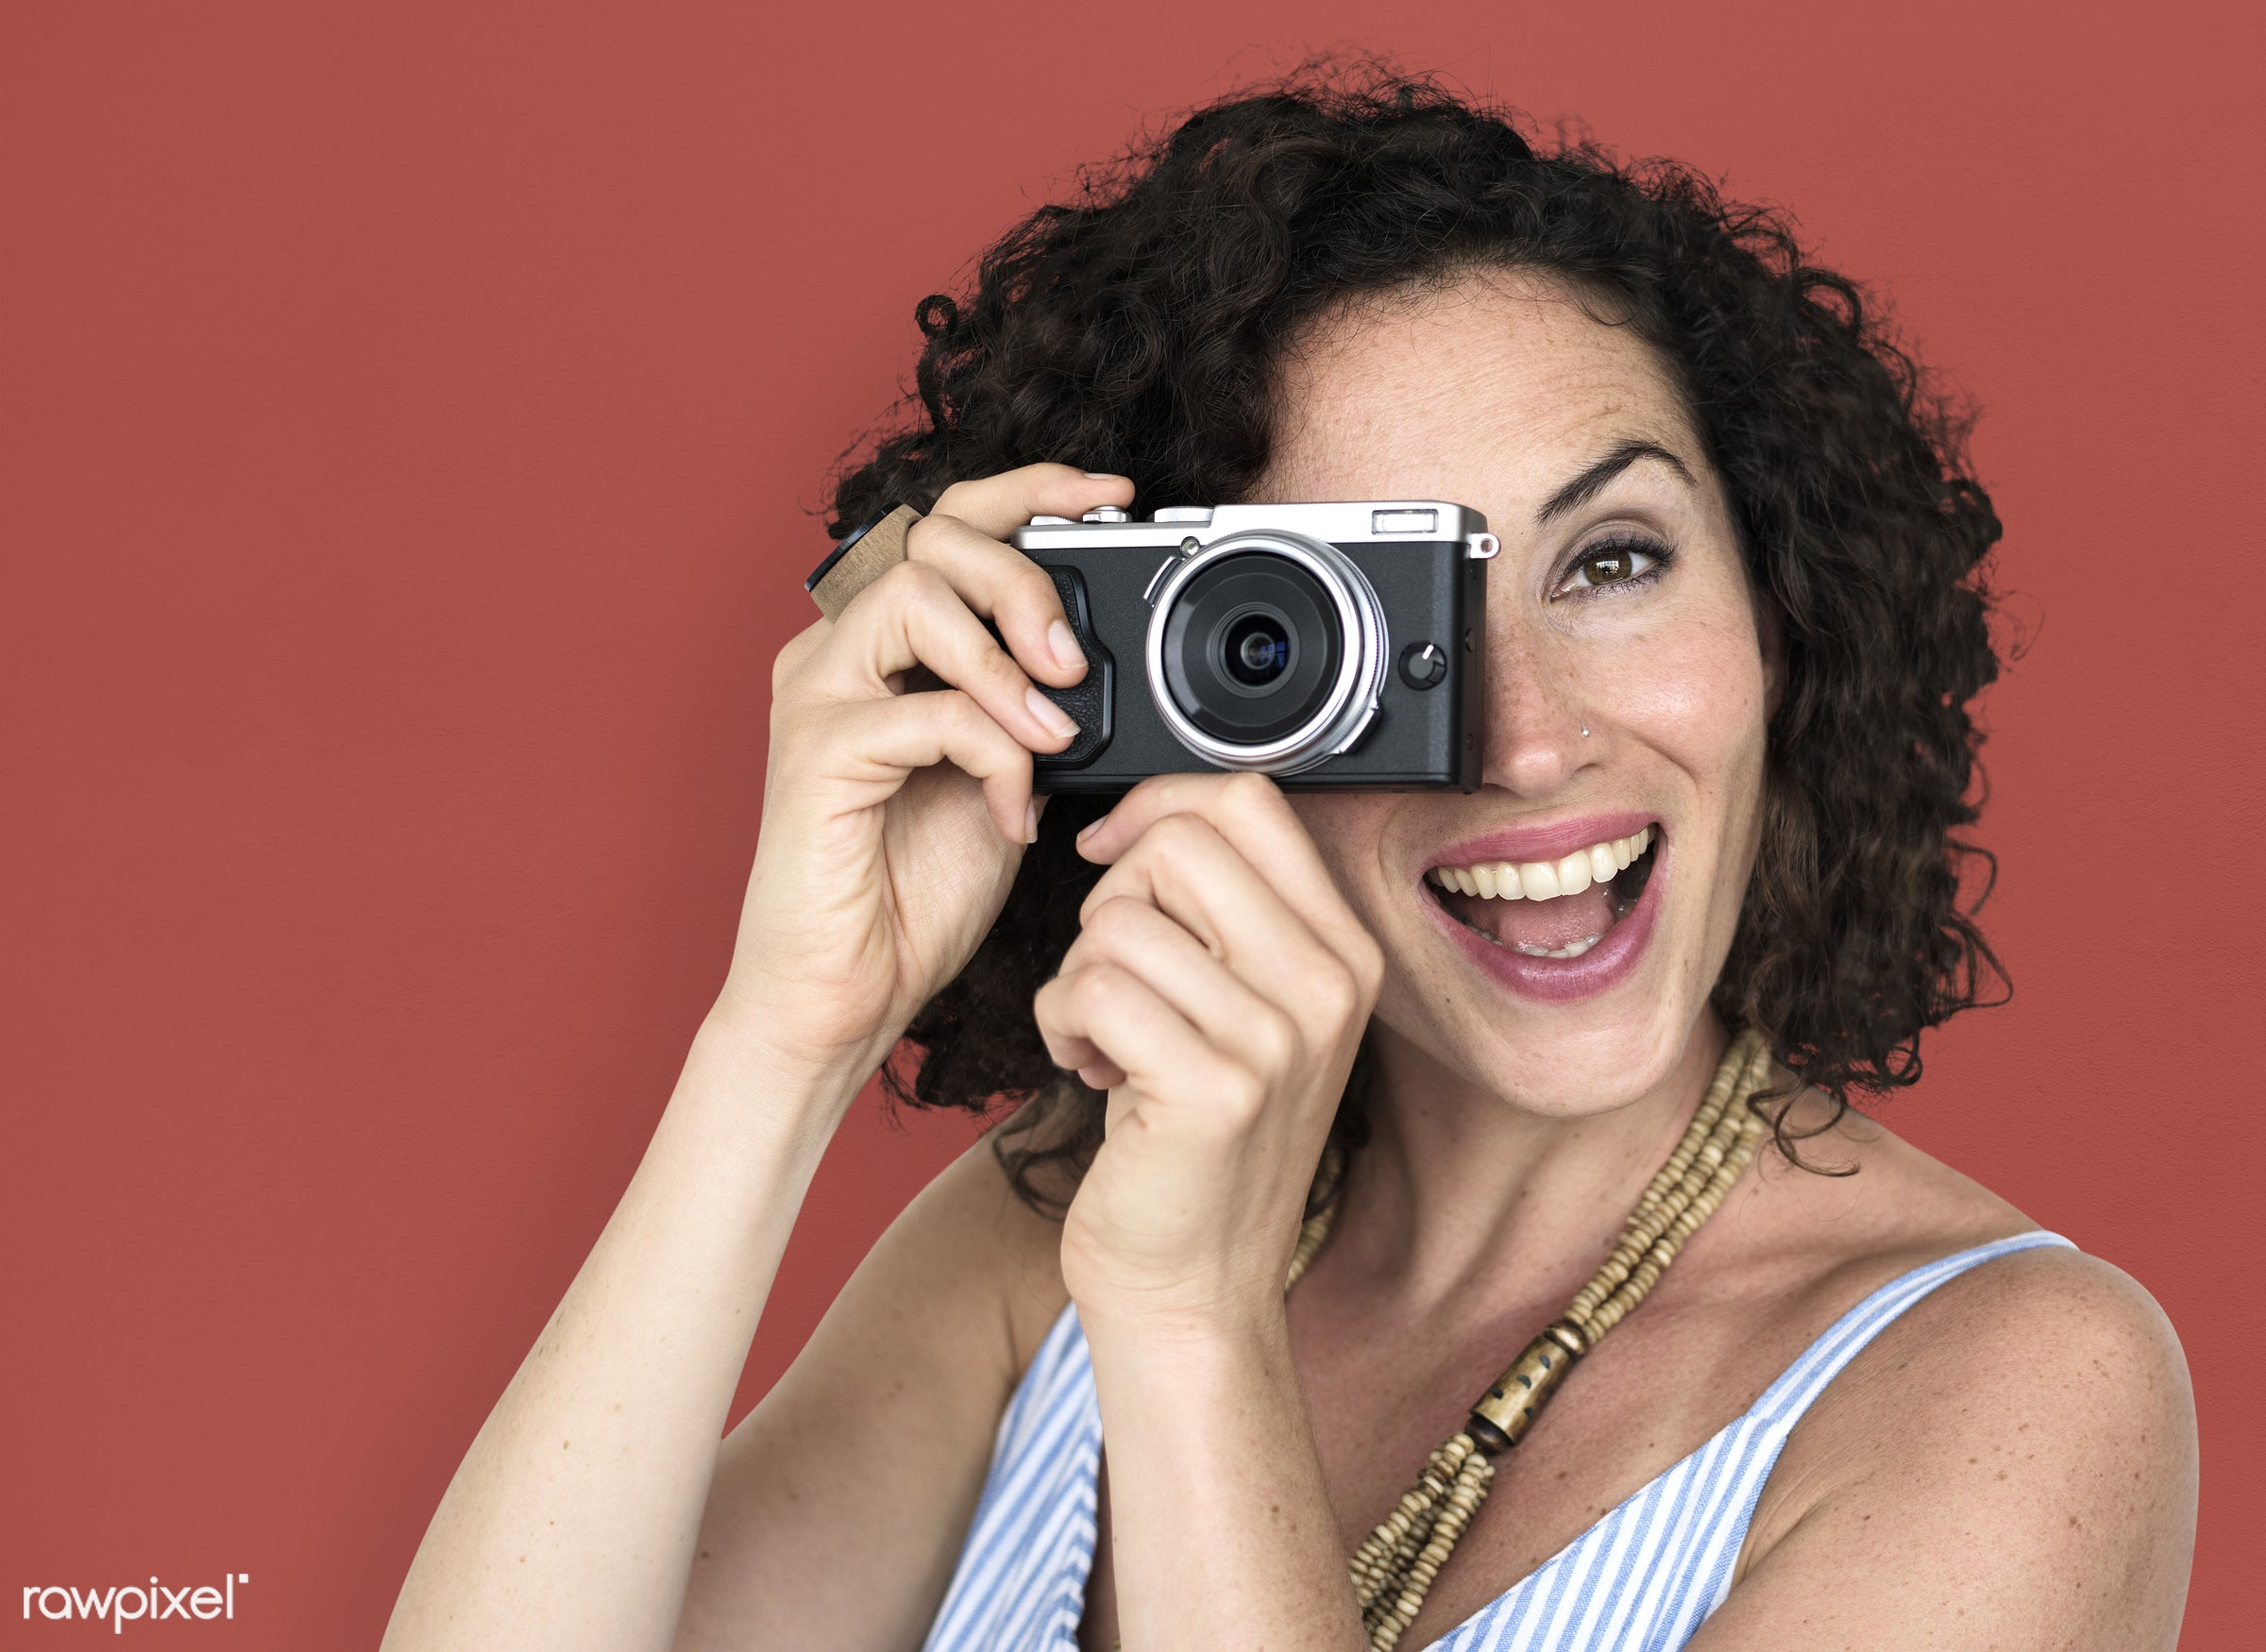 studio, necklet, person, press, people, shot, photography, caucasian, hands, woman, photographer, smile, isolated, camera,...